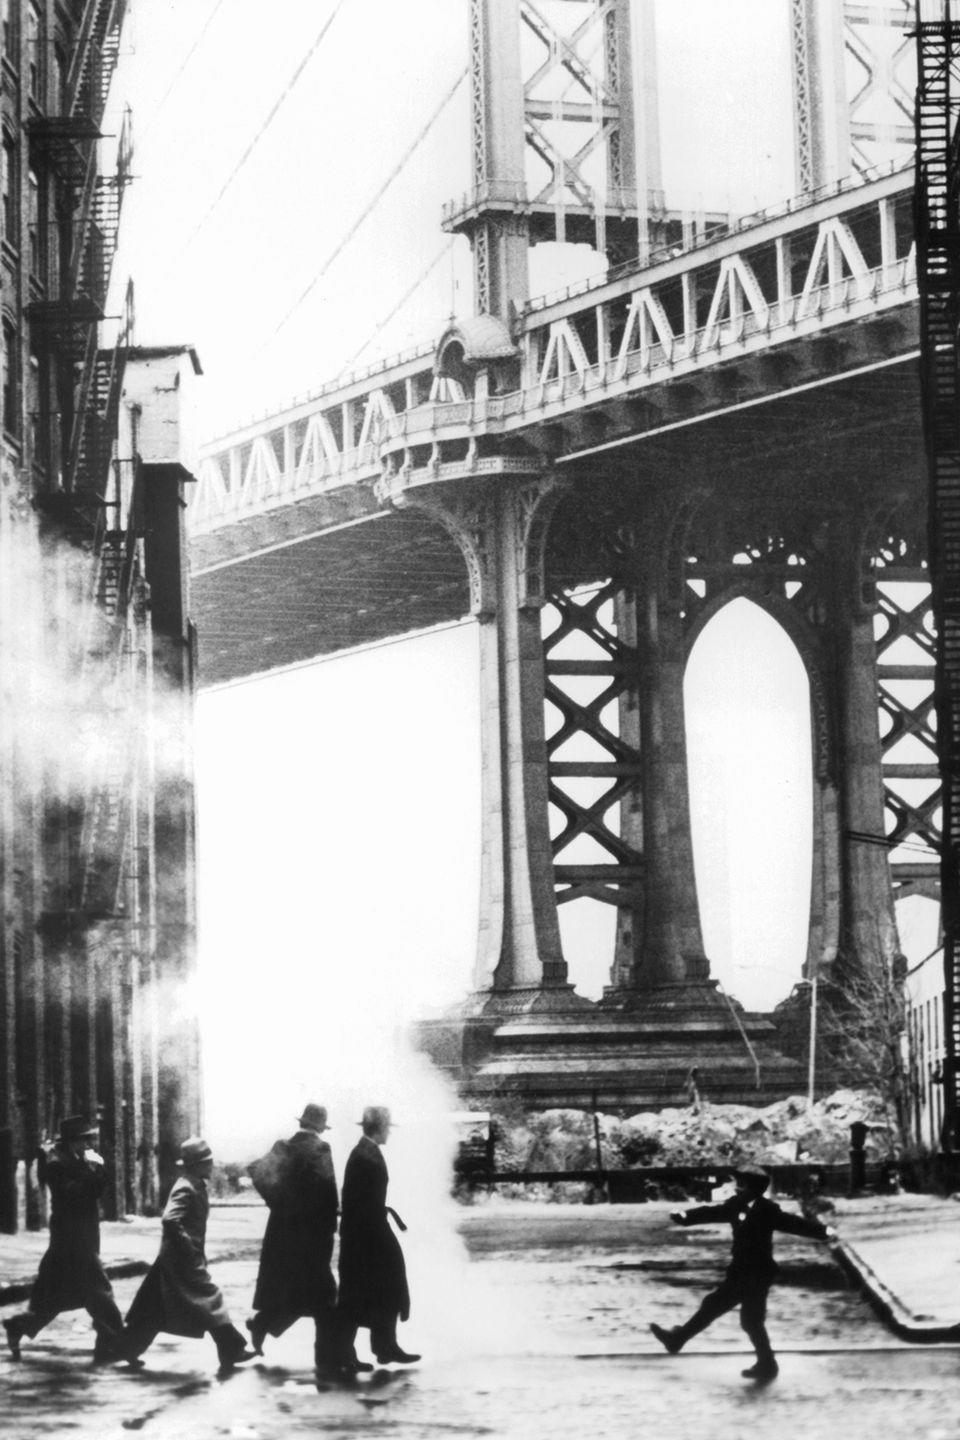 """<p>The Williamsburg Bridge rises high above New York's streets in a scene from the film <em><a href=""""https://www.amazon.com/Once-Upon-Time-America-Pesci/dp/B001EC2J2U?tag=syn-yahoo-20&ascsubtag=%5Bartid%7C10063.g.36311211%5Bsrc%7Cyahoo-us"""" rel=""""nofollow noopener"""" target=""""_blank"""" data-ylk=""""slk:Once Upon A Time In America"""" class=""""link rapid-noclick-resp"""">Once Upon A Time In America</a>.</em></p>"""